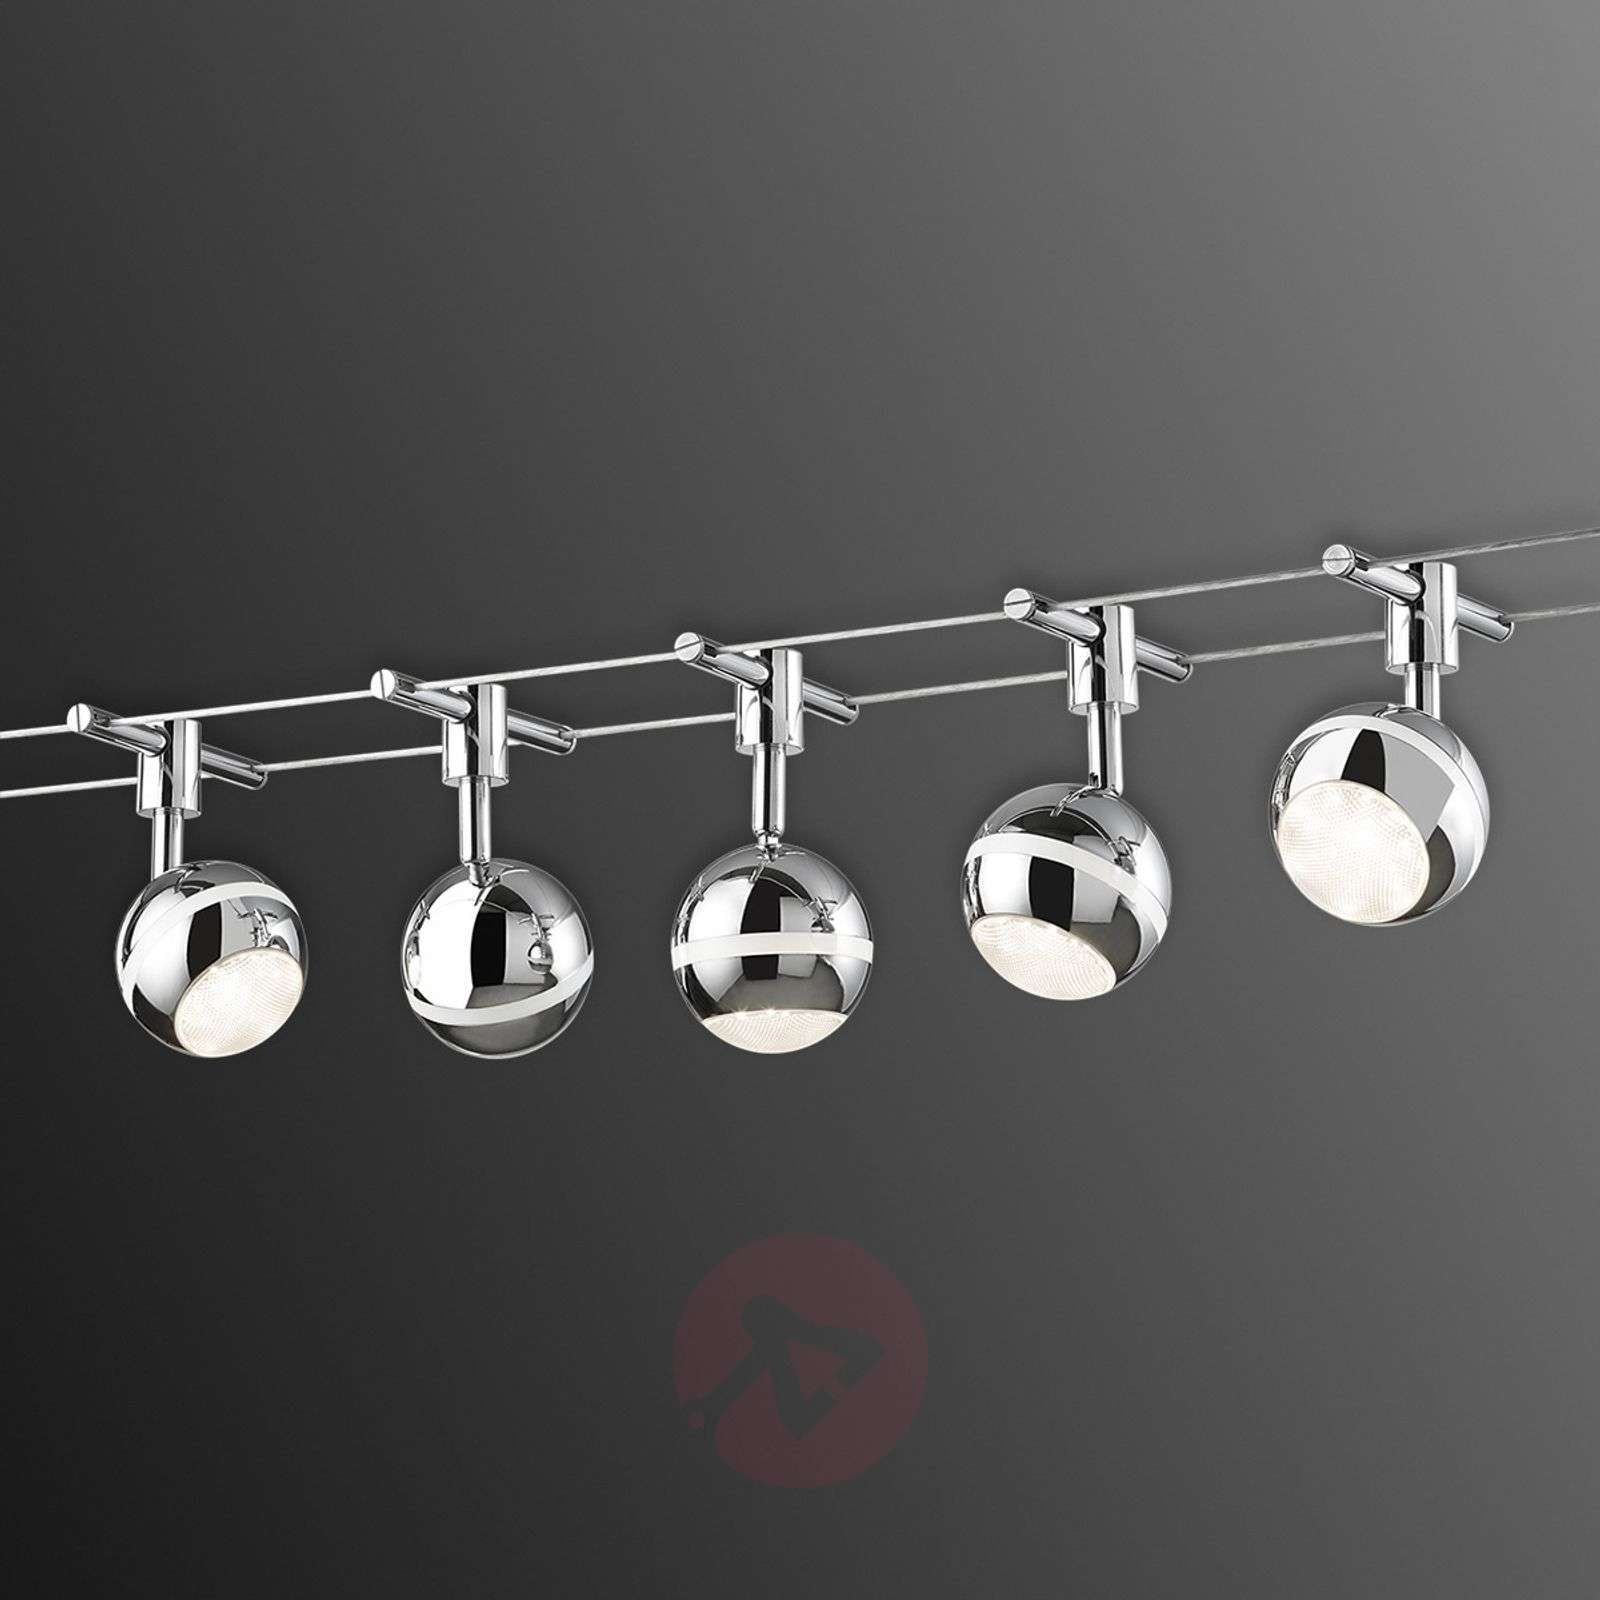 Cable lighting lights baloubet led cable system in chrome aloadofball Images